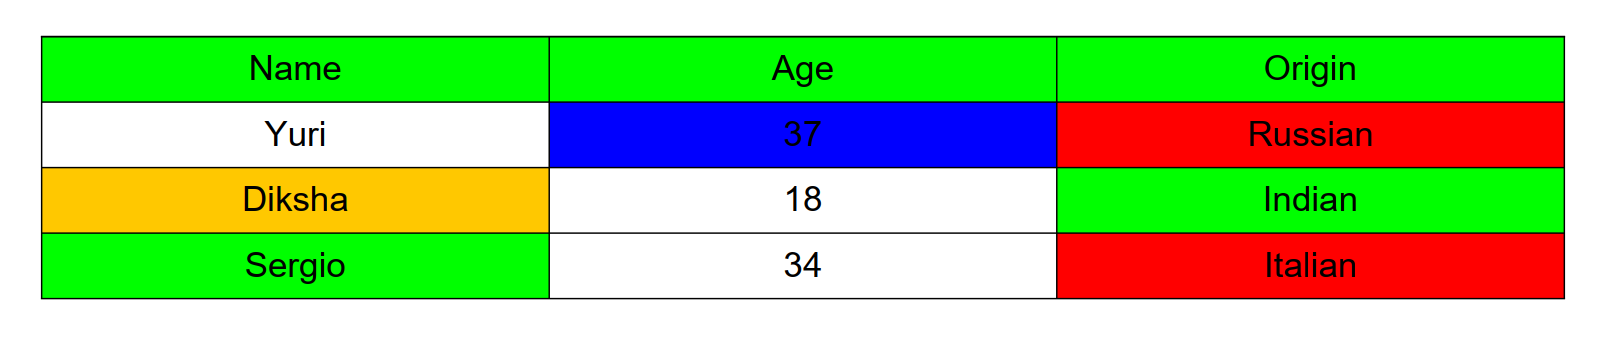 set background to a table